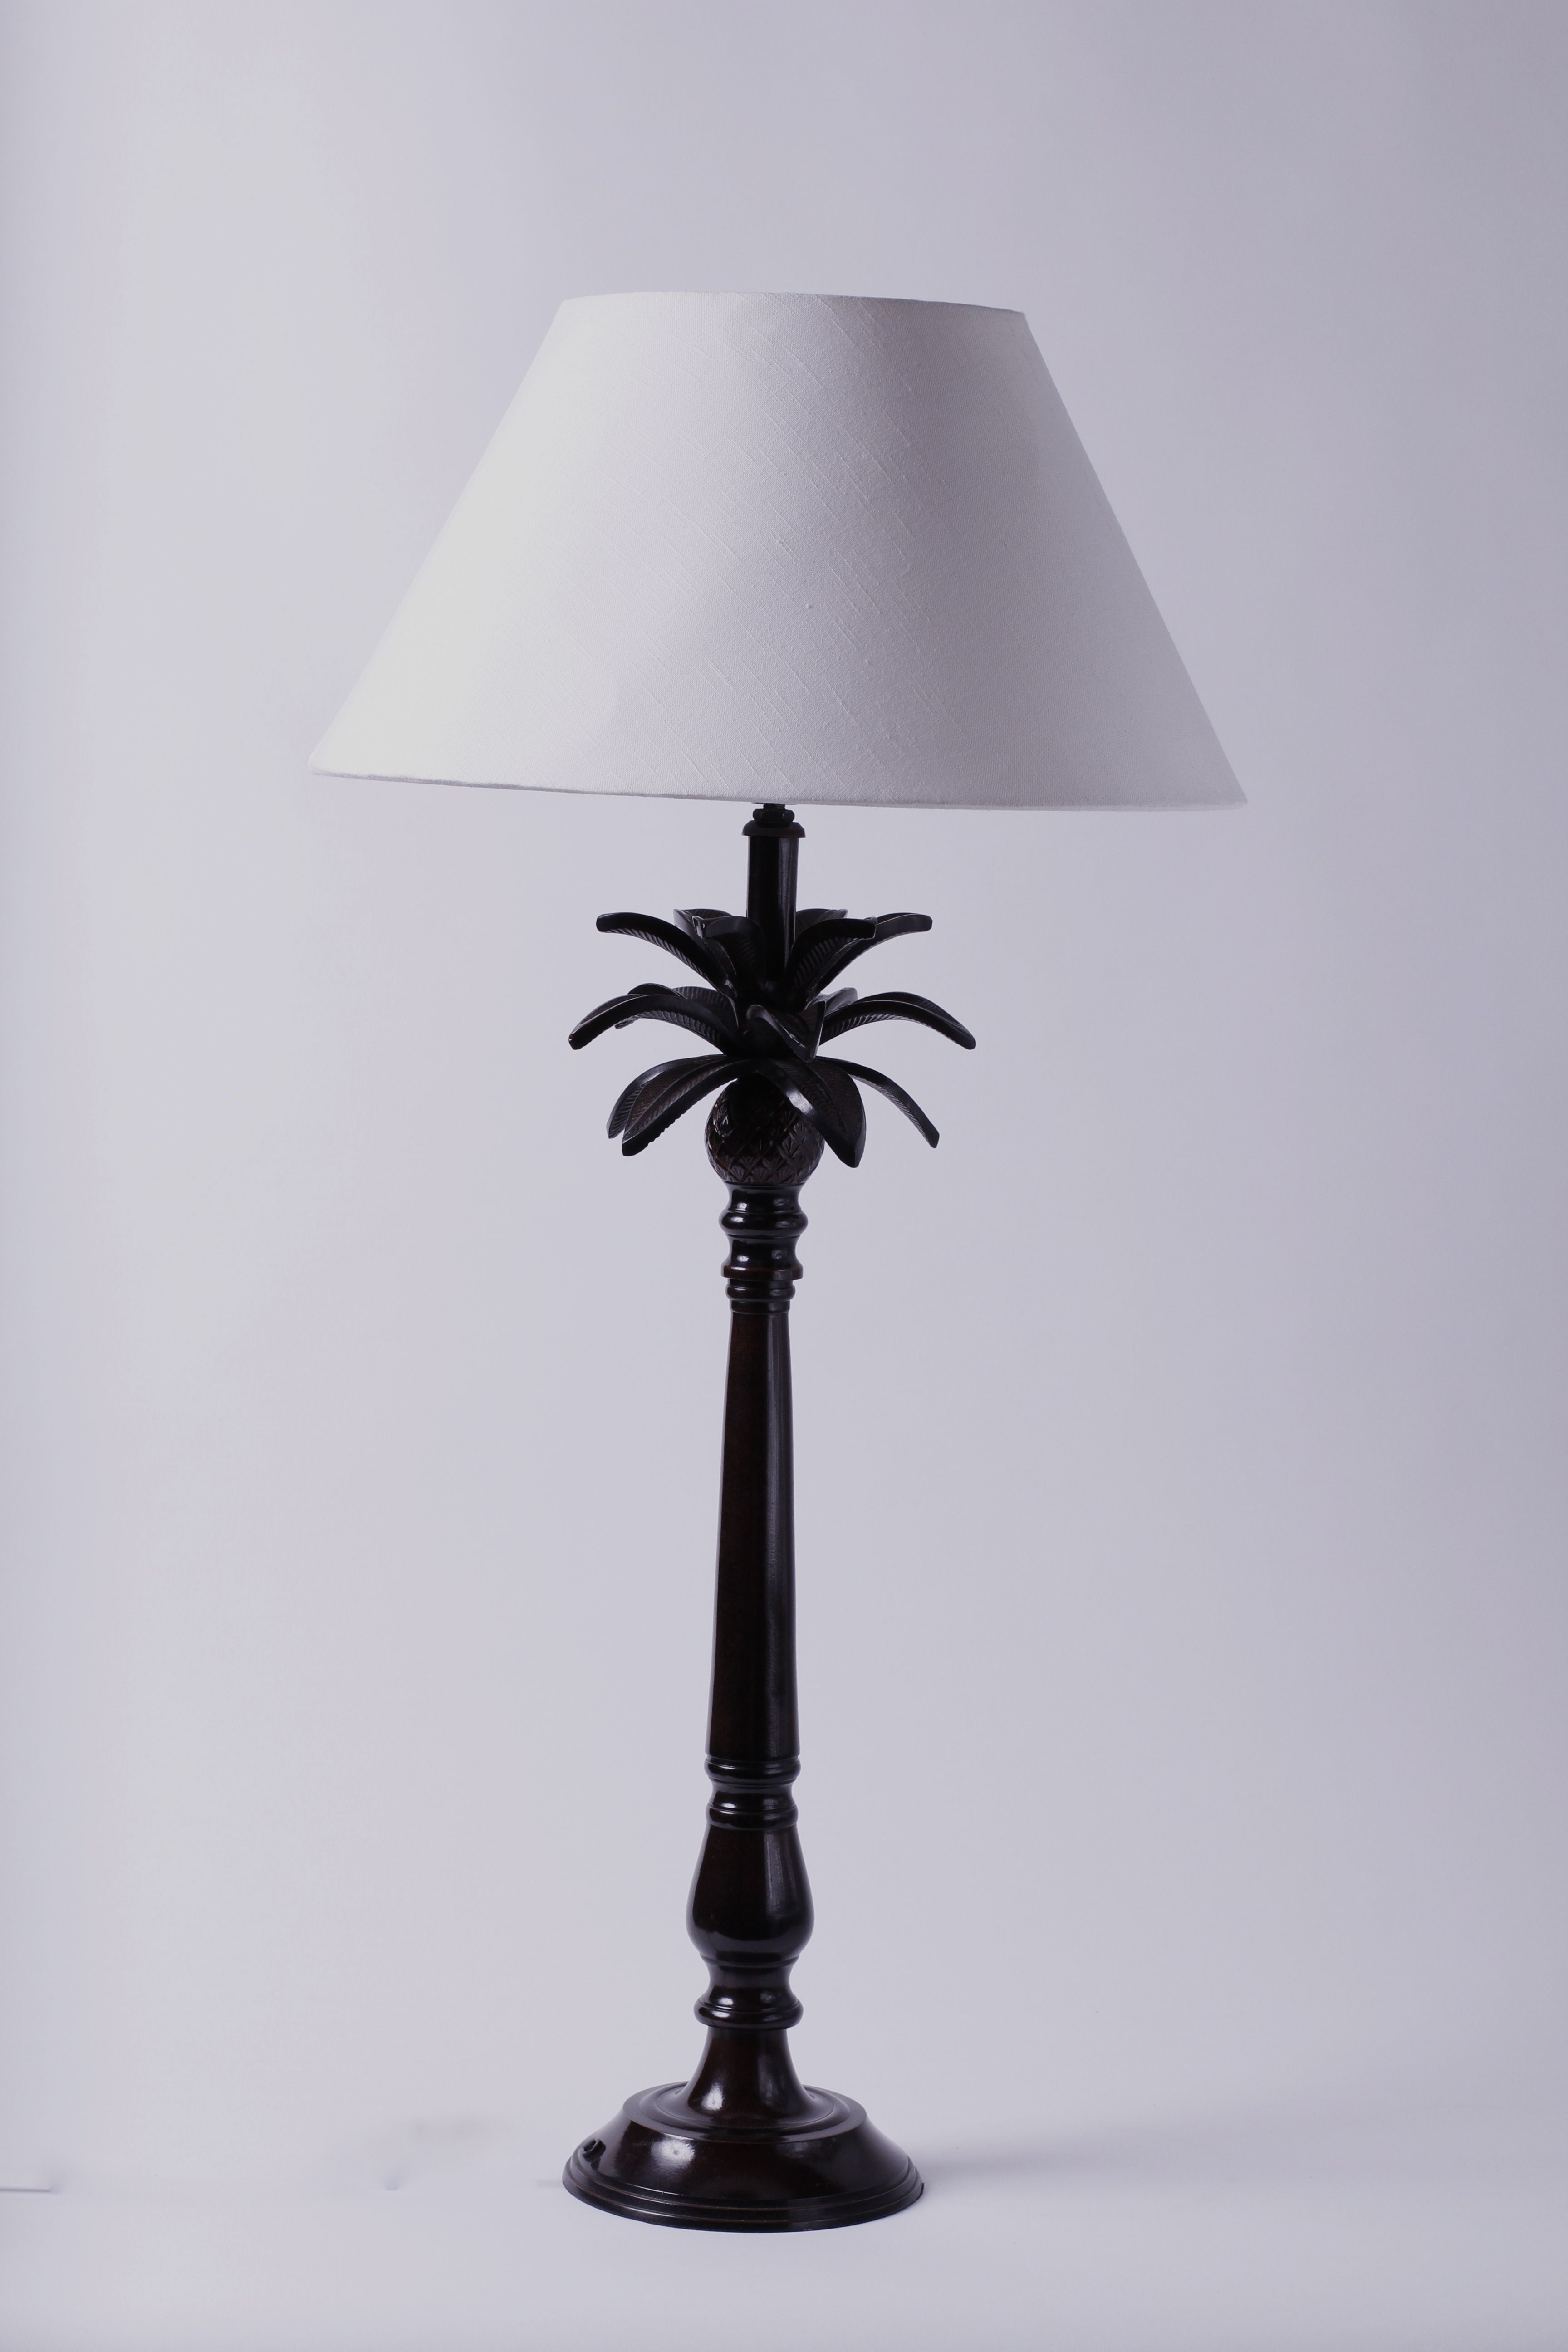 Colonial style palm tree table lamp s250 including shade 80cm colonial style palm tree table lamp s250 including shade 80cm tall and perfect for singapore geotapseo Gallery